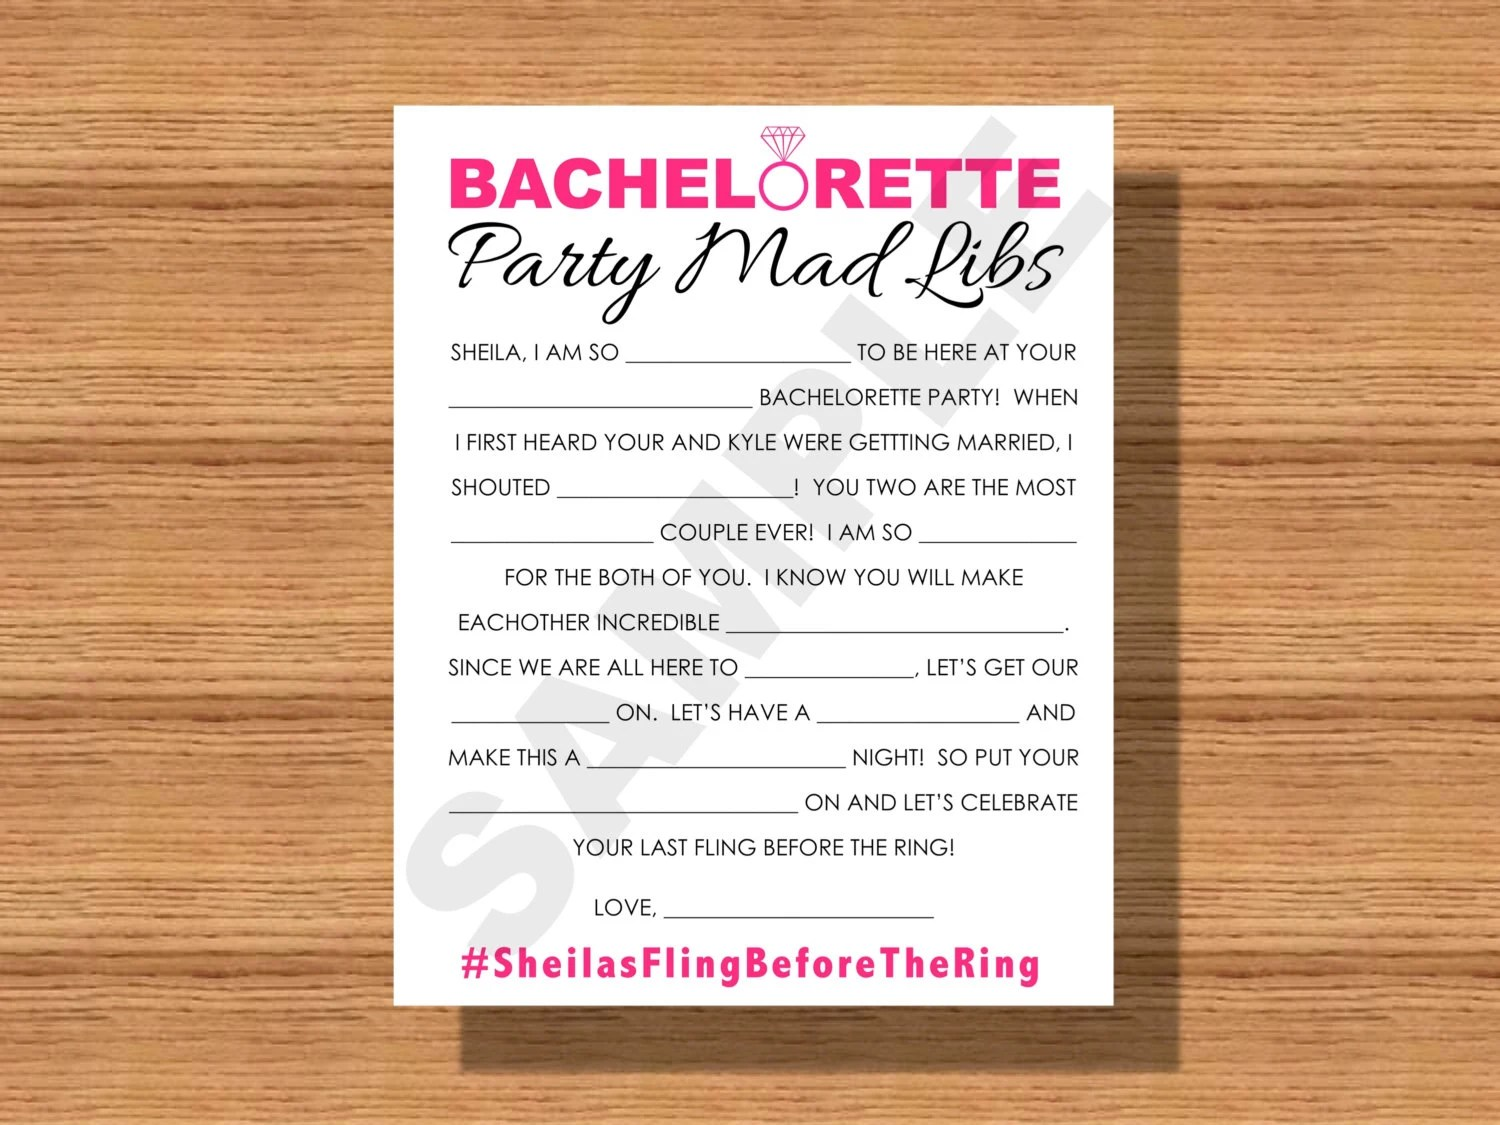 Bachelorette Party Mad Libs Printable Bachelorette Party Mad